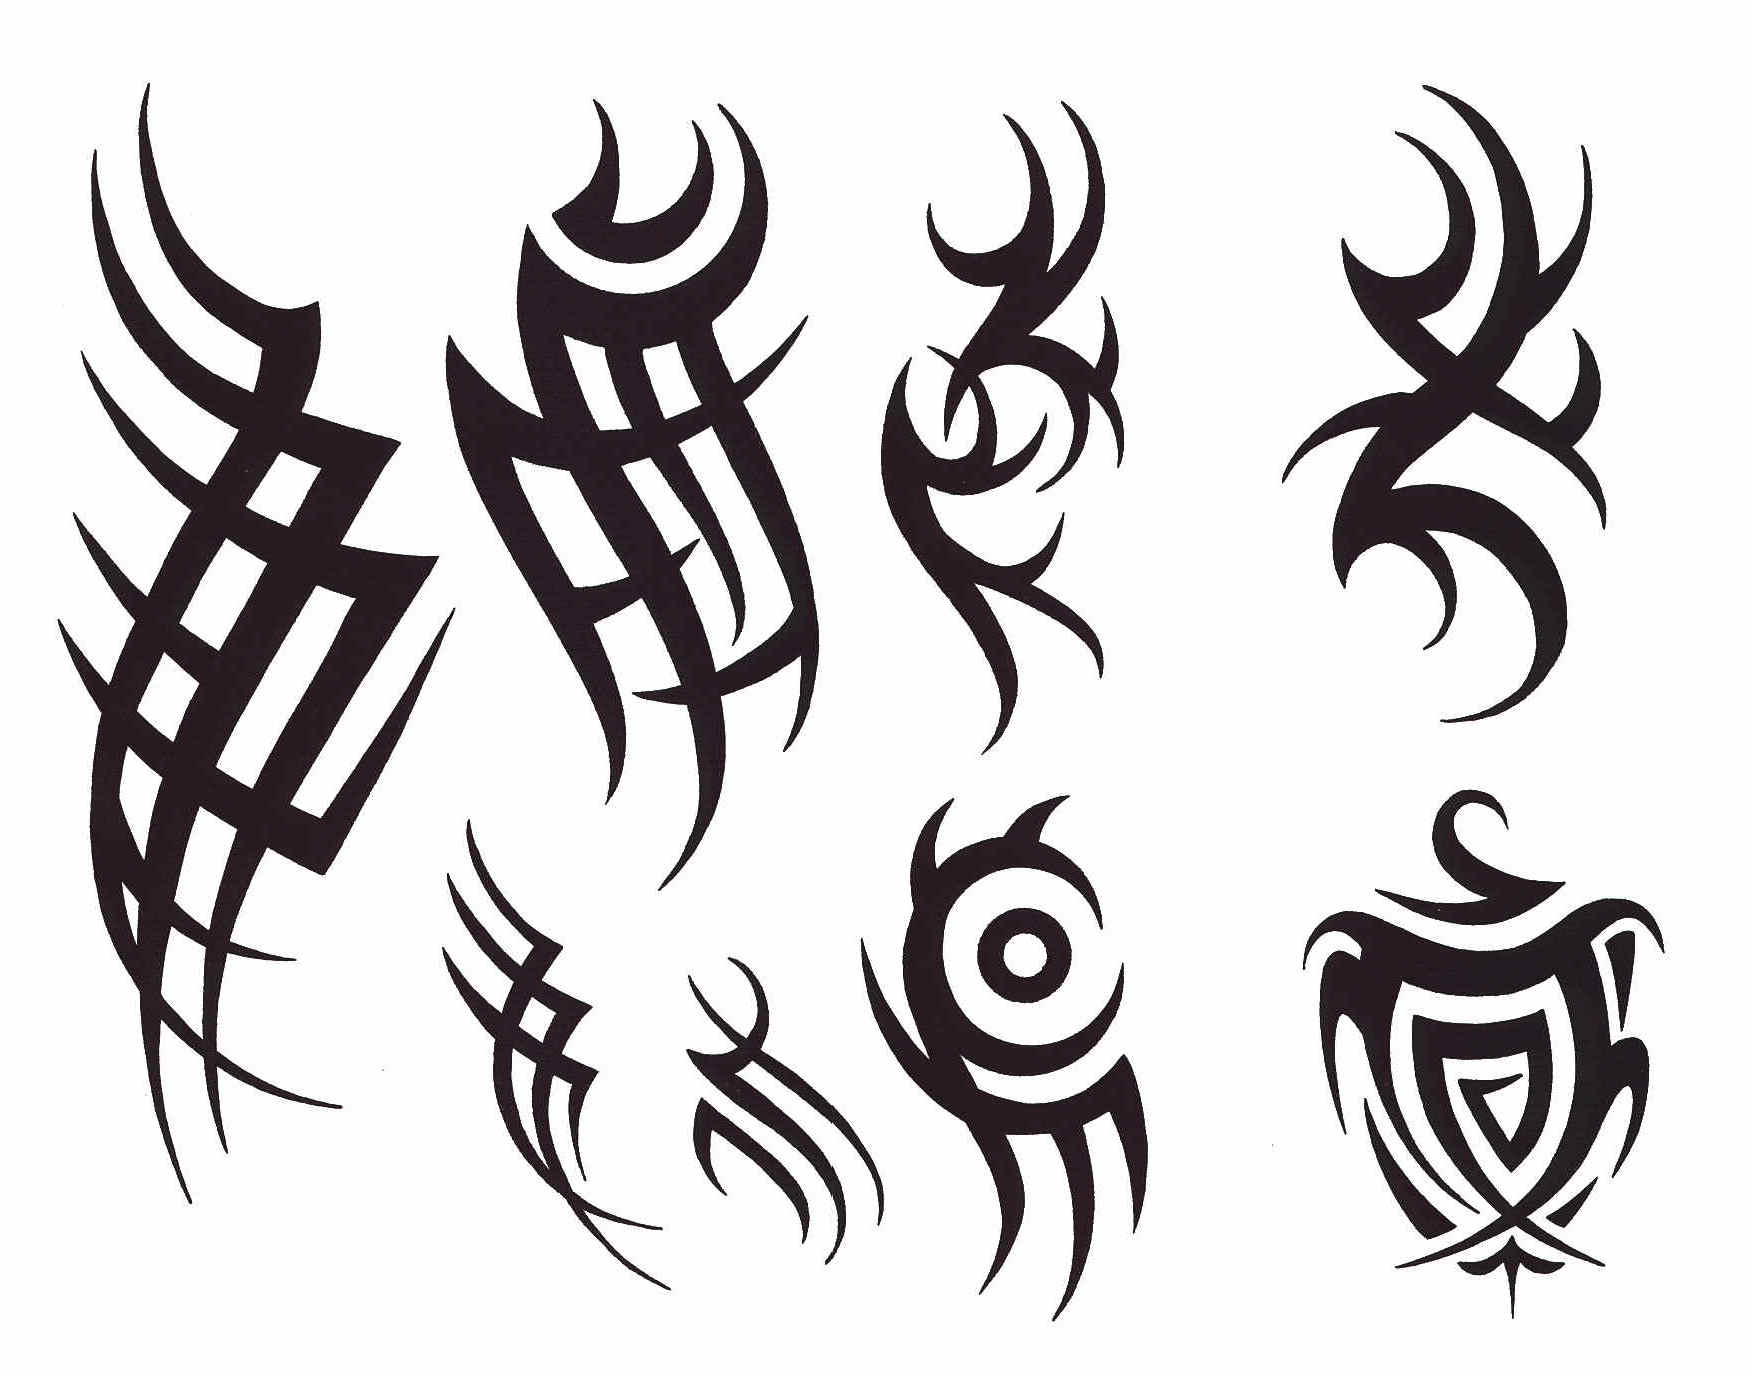 cool tattoo drawings clipart best. Black Bedroom Furniture Sets. Home Design Ideas